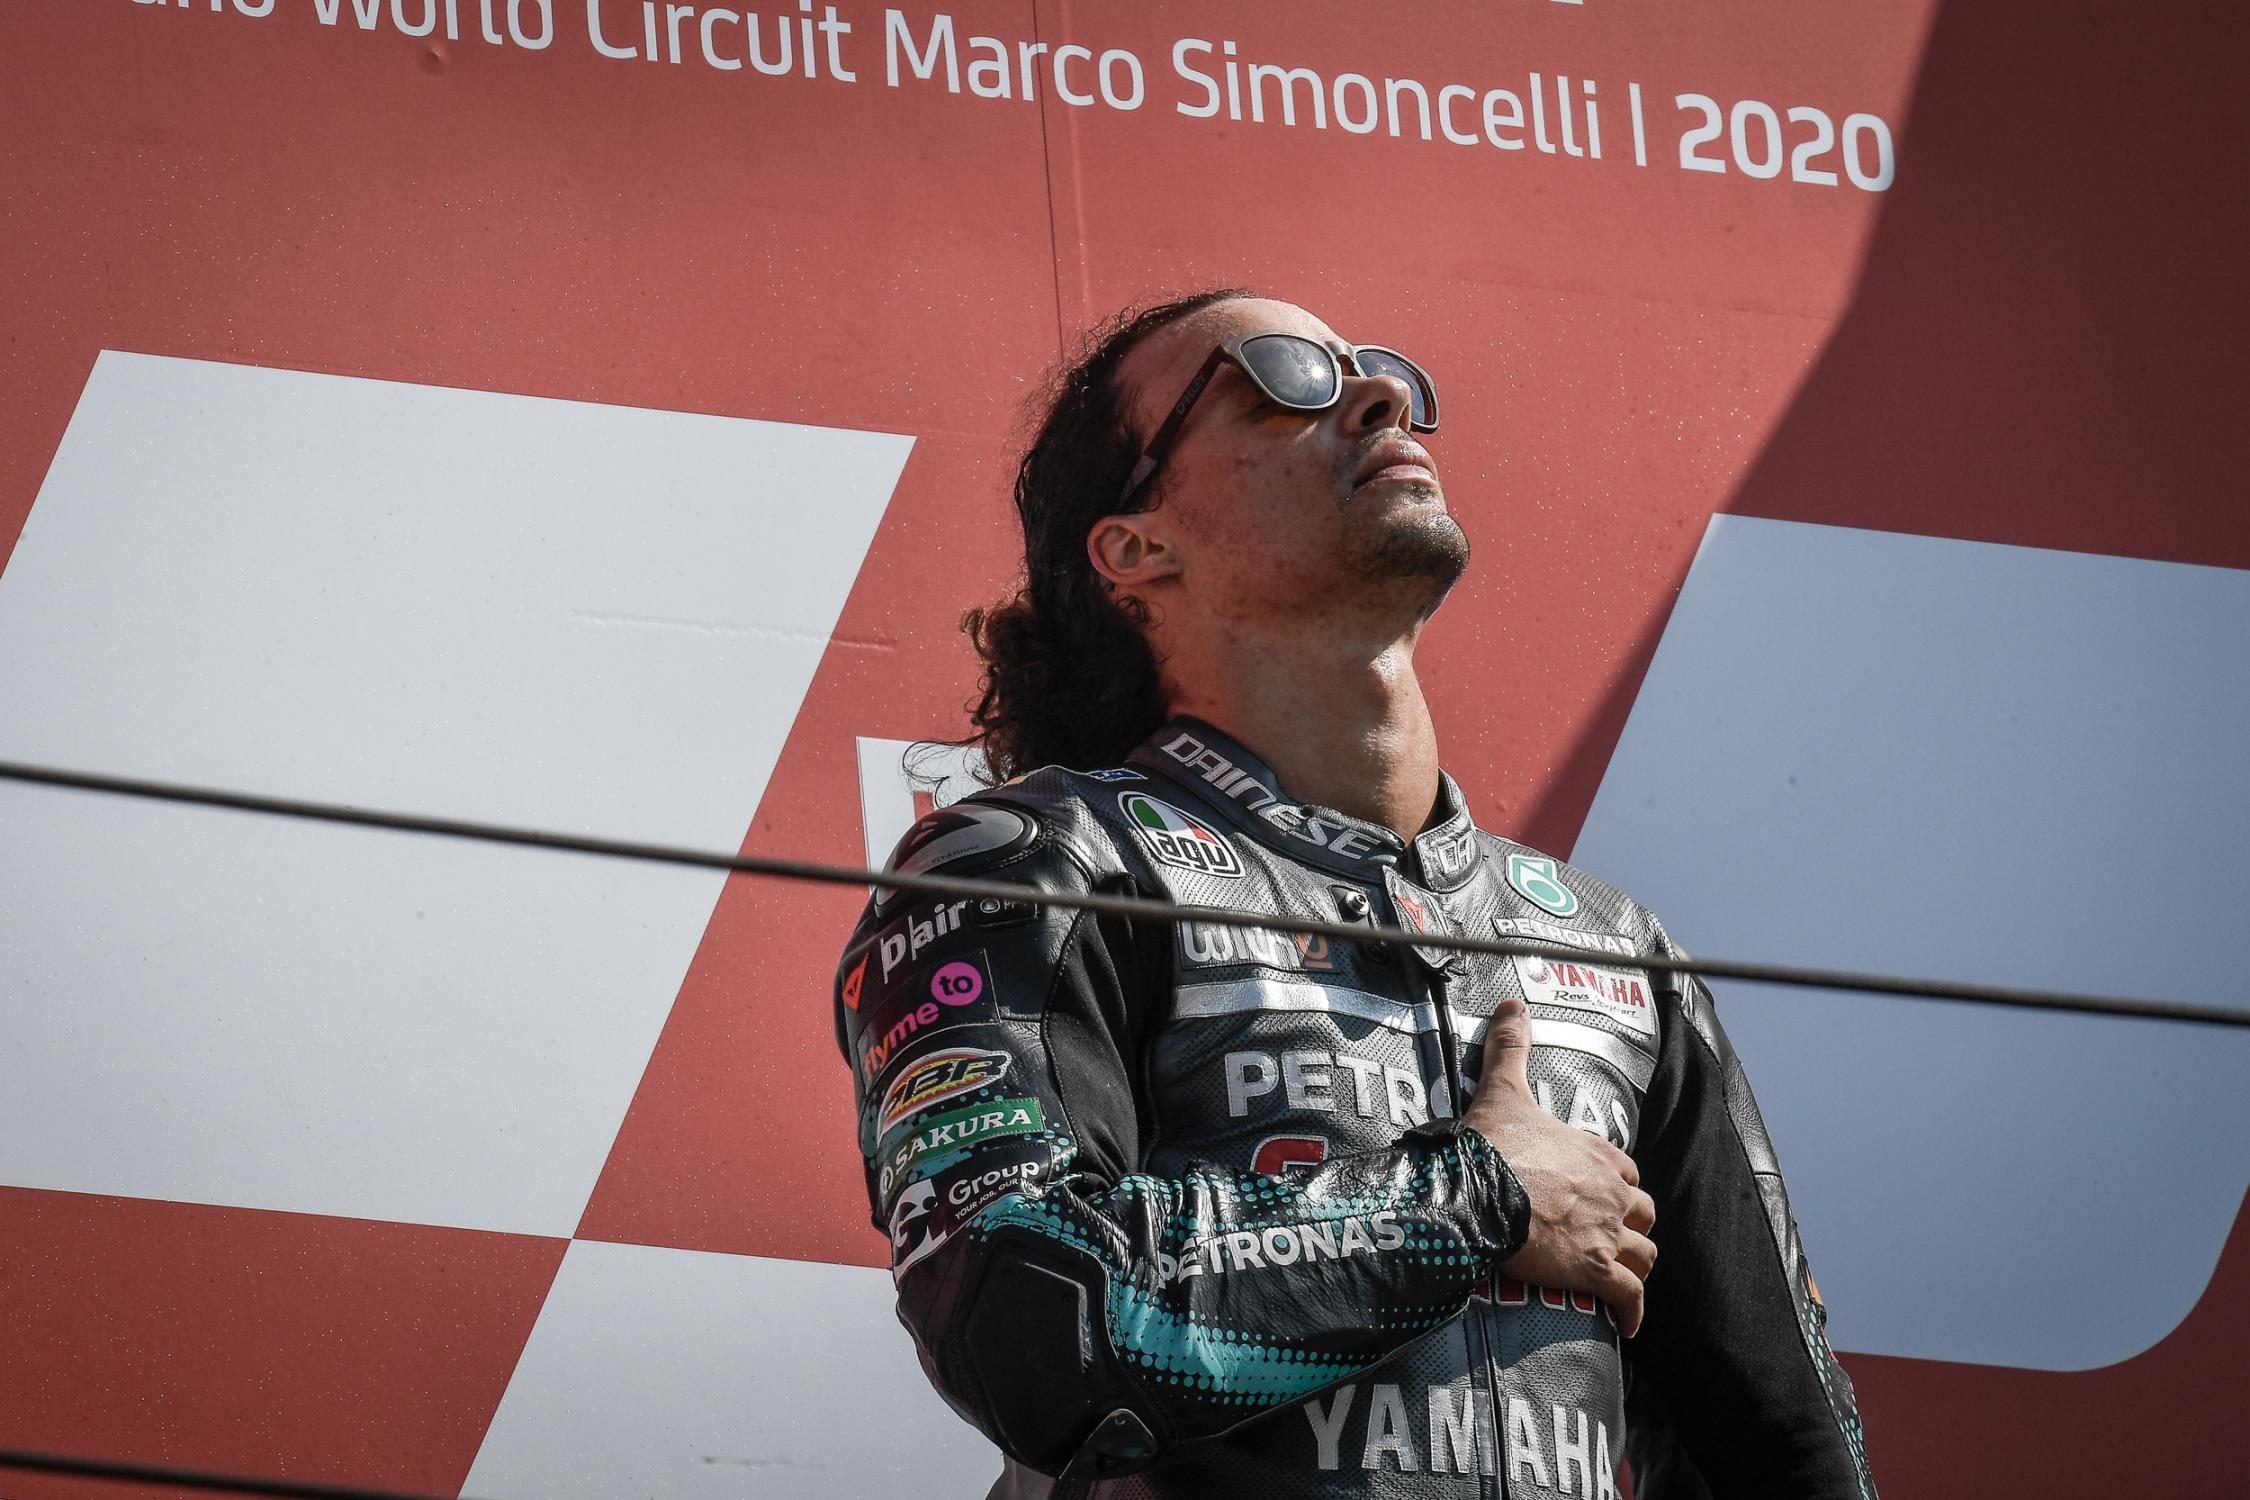 MotoGP: Franco Morbidelli's rise to the top - Everything